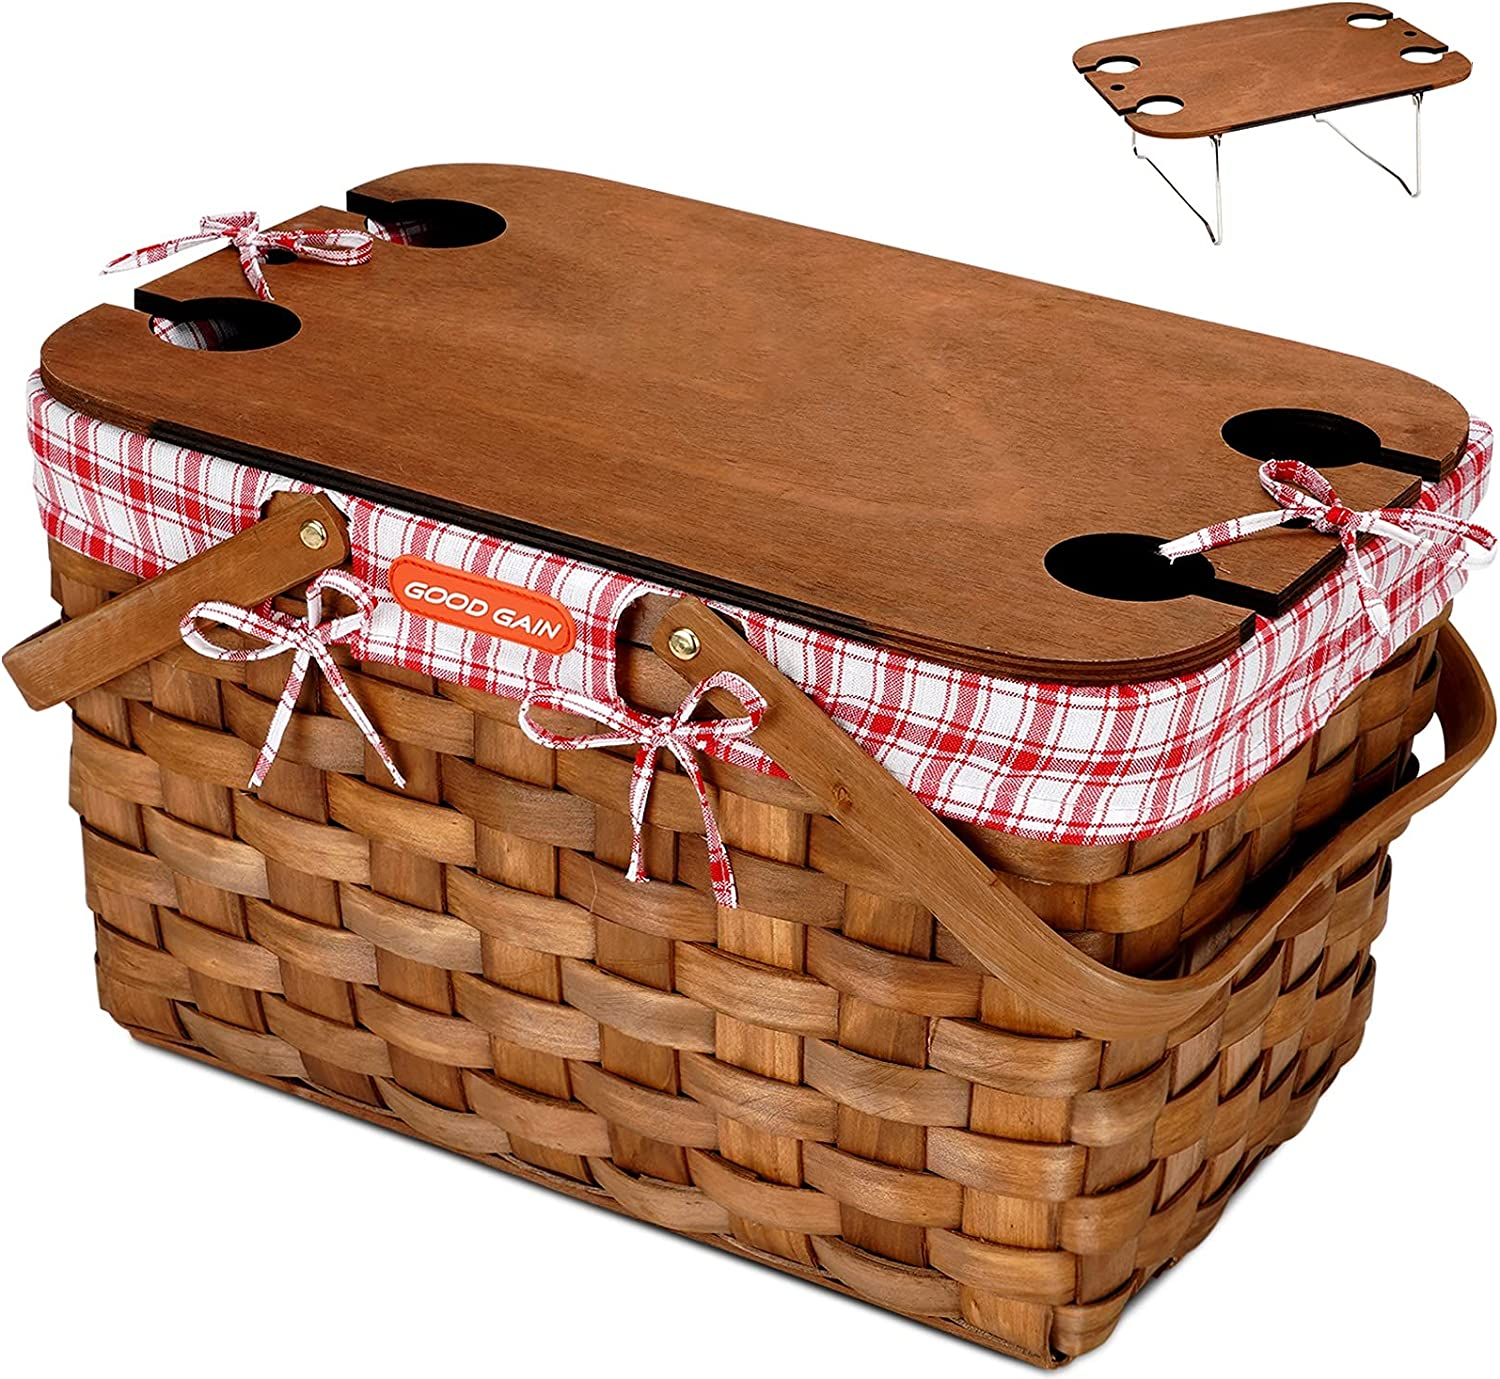 G GOOD GAIN Woodchip Picnic Basket with Portable Picnic Table, Natural Woven Basket with Double Folding Handles, Hand Woven Easter Eggs and Candy Basket, Bath and Kids Toy Wicker Storage Basket L Red